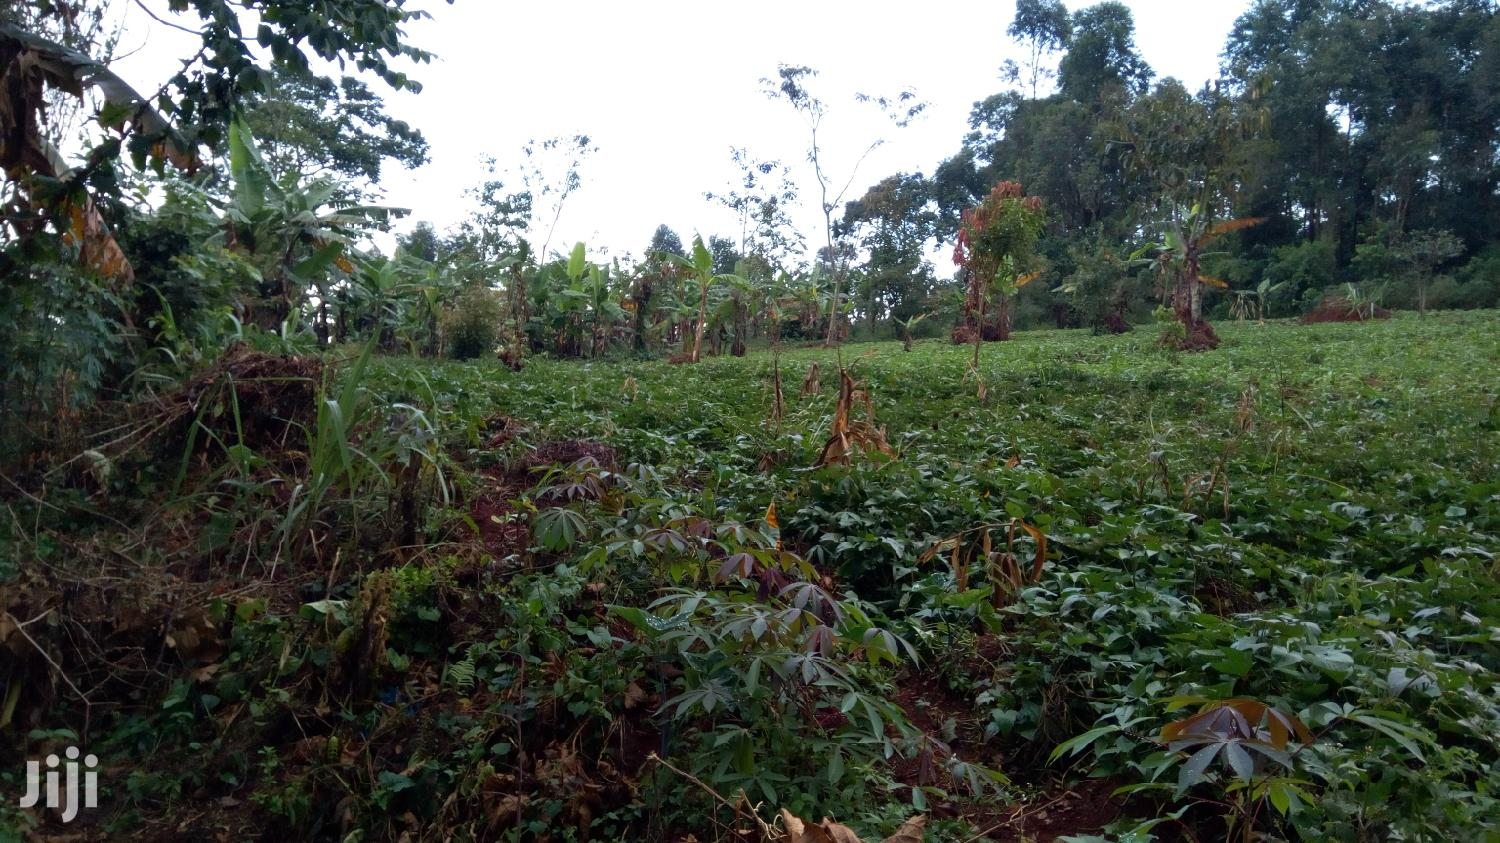 2 Acres Land In Mukono Kisogga For Sale | Land & Plots For Sale for sale in Mukono, Central Region, Uganda